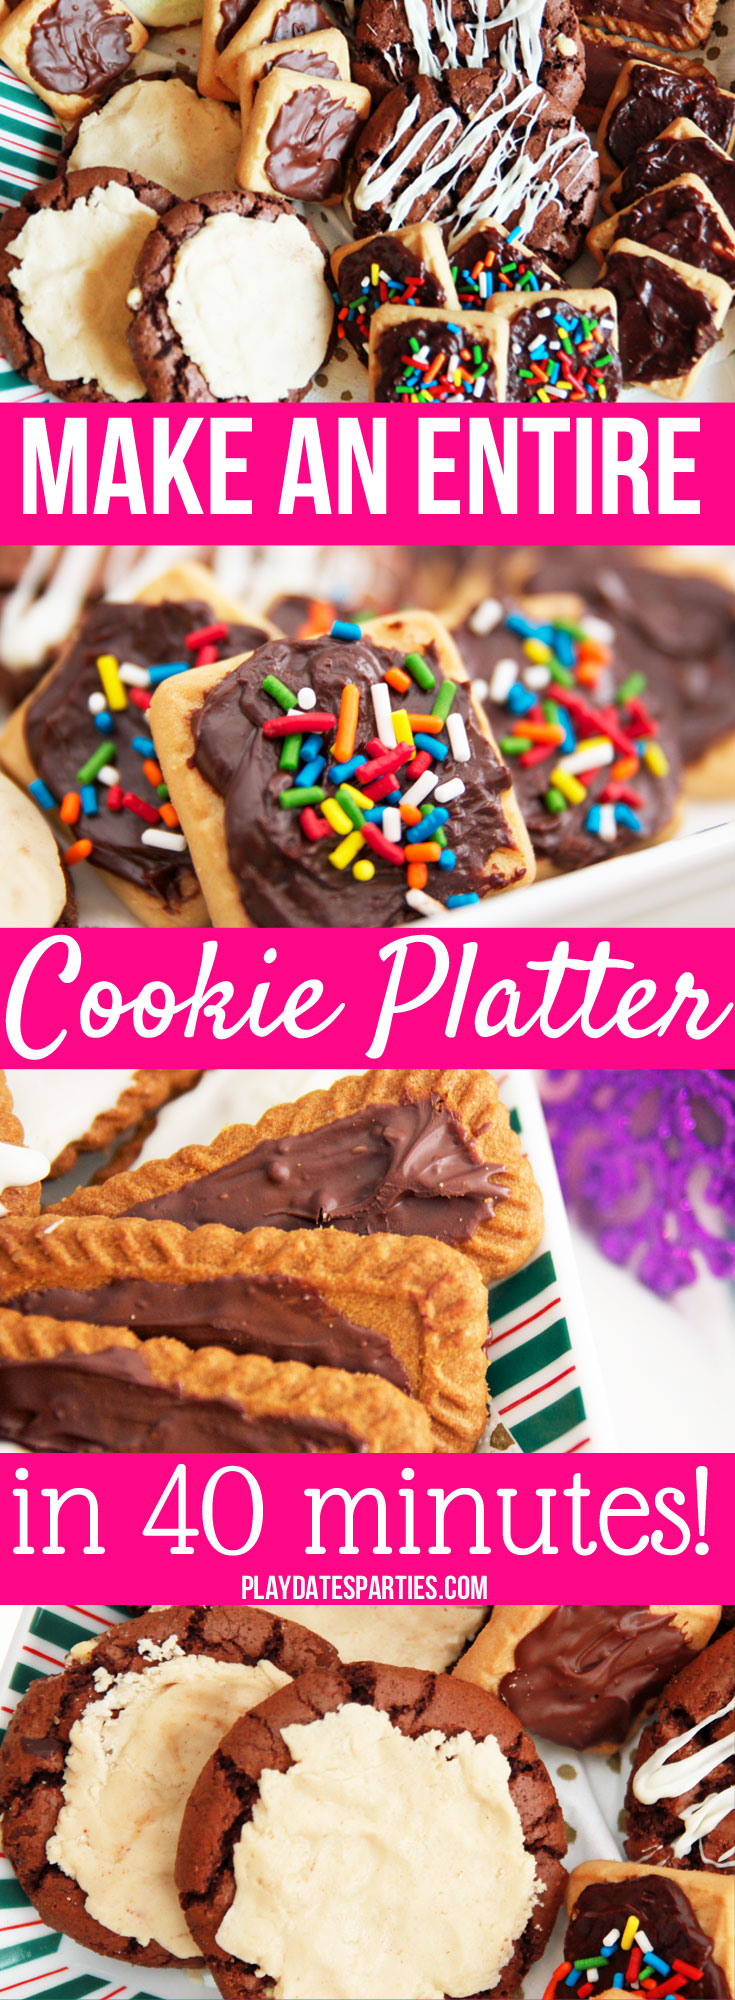 Some days you don't have time to make a whole platter of homemade cookies.  Instead, find out the best cookie platter tips to turn store-bought cookies into awesome 'homemade' treats...in only 40 minutes!